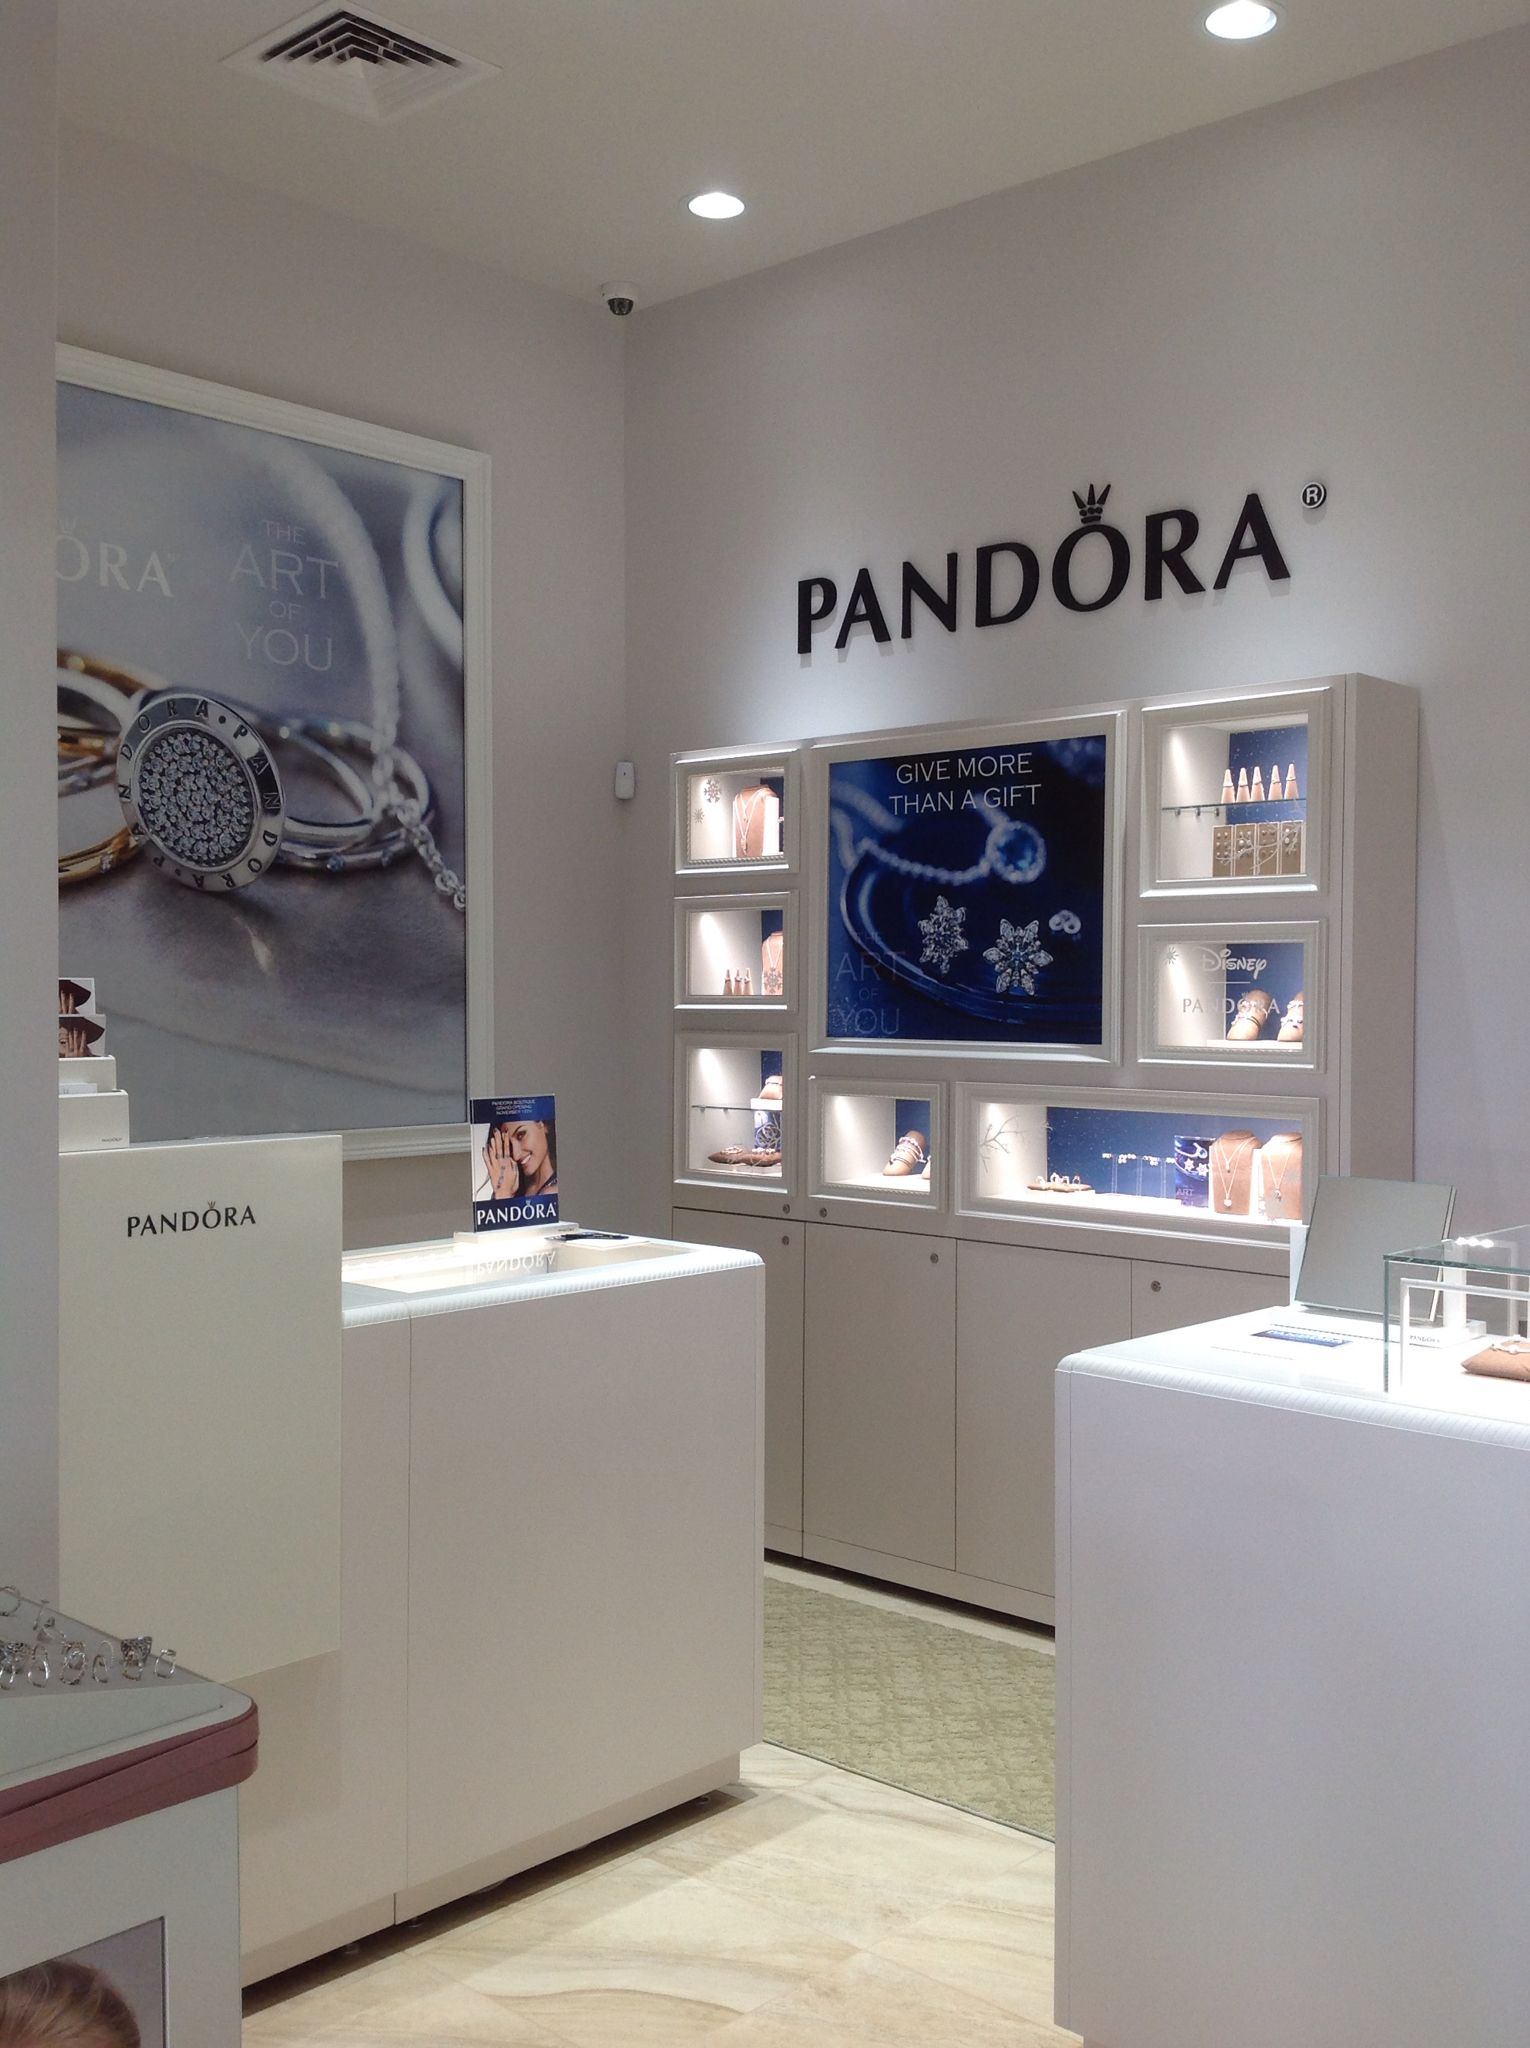 Pandora Roosevelt Field Mall : pandora, roosevelt, field, Extremely, Excited, Announce, GRAND, OPENING, PANDORA, Boutique!, Showroom, Robins, Spr…, Escaparates,, Negocios,, Vidrieras